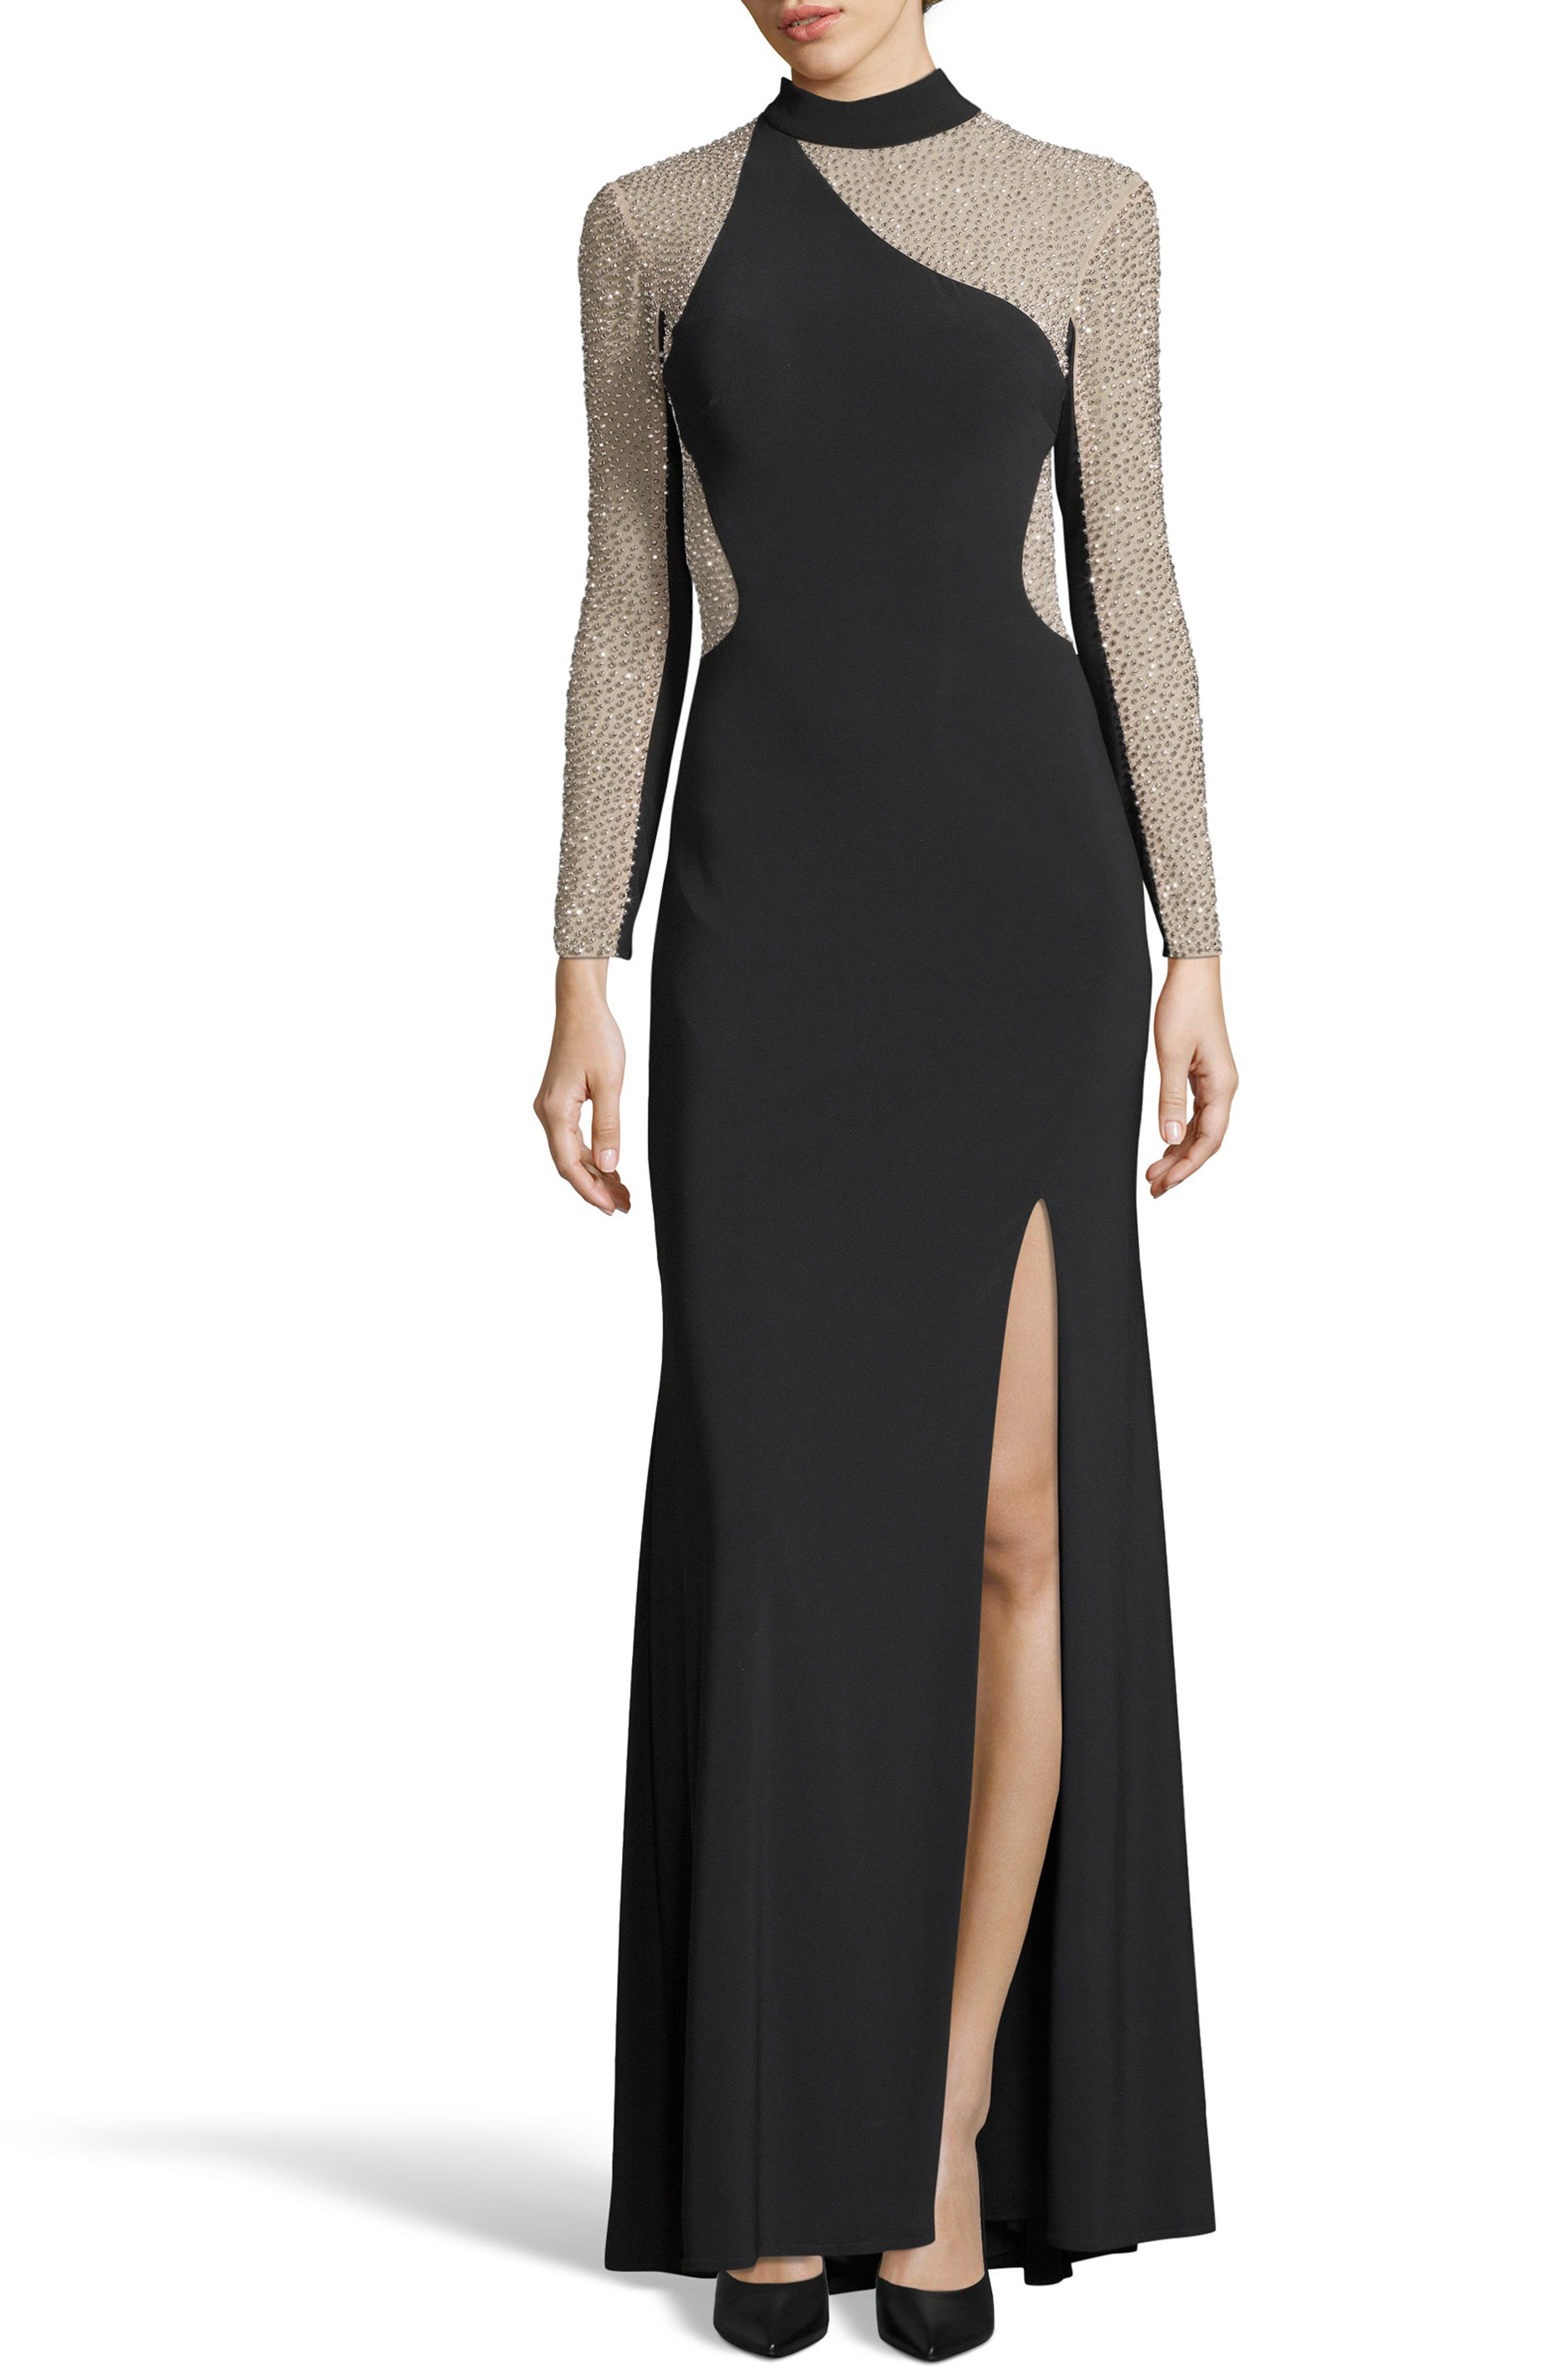 Xscape Ity Bead Embellished Jersey Gown, Black